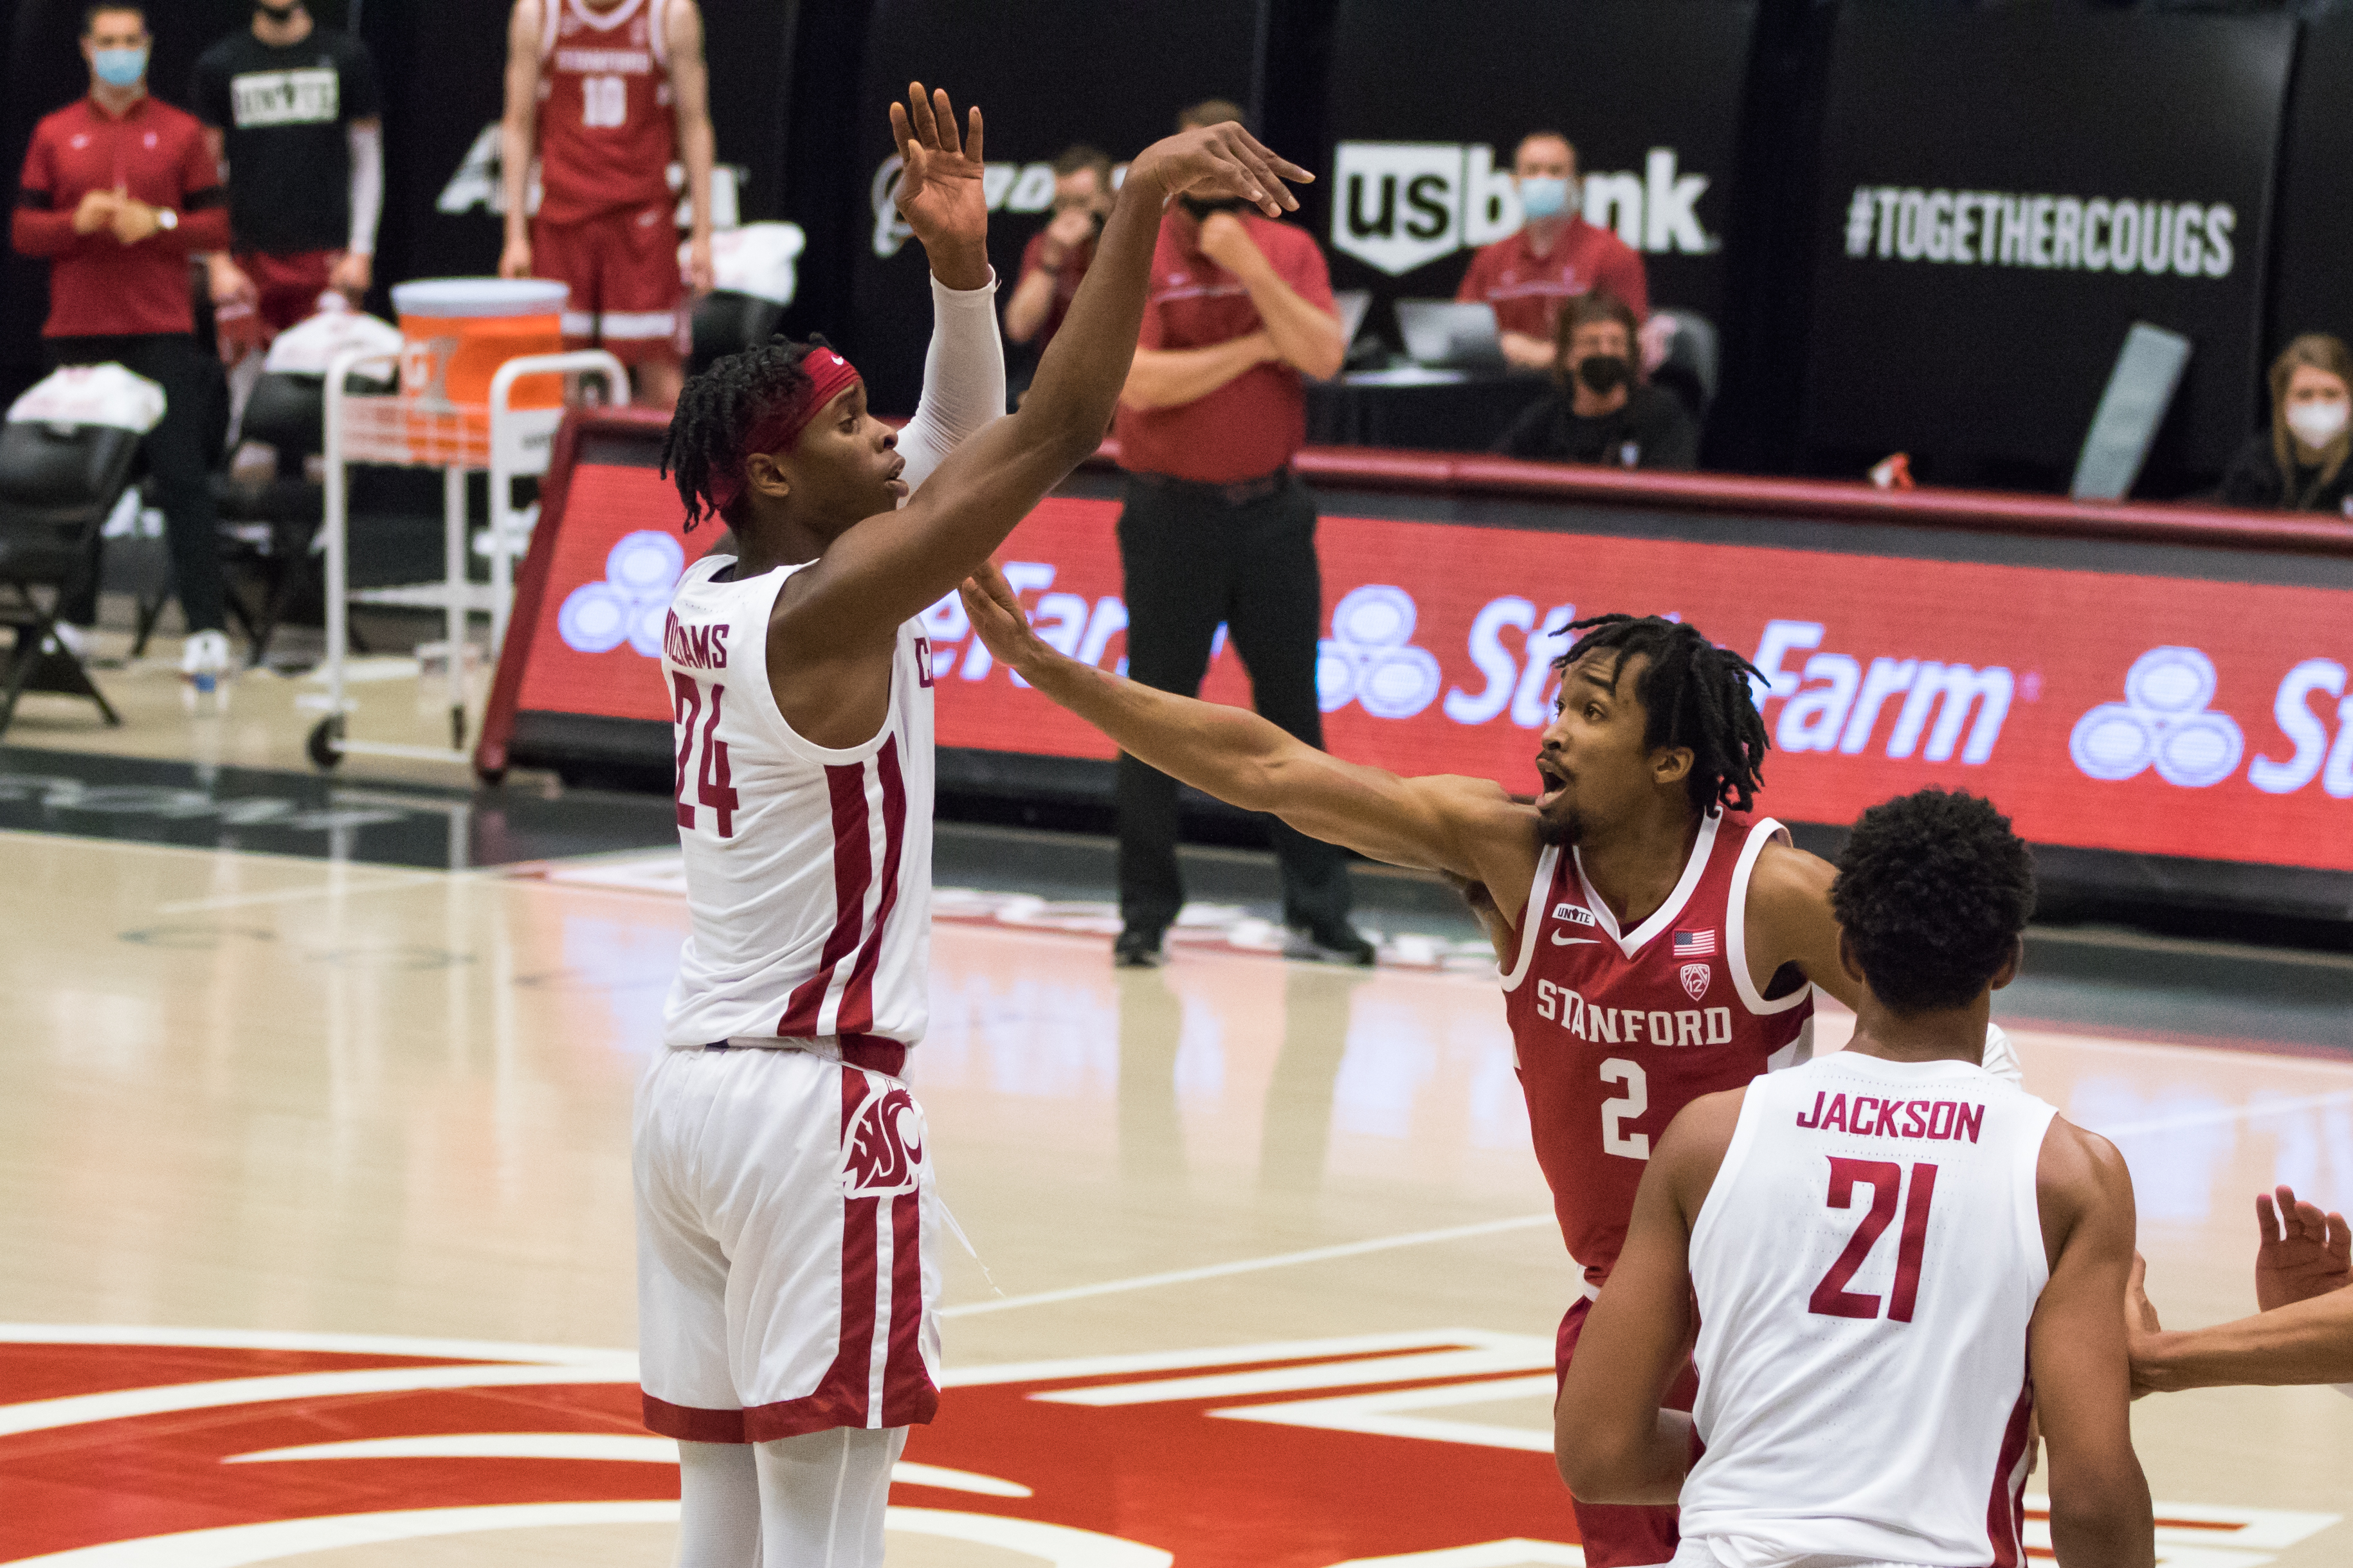 PULLMAN, WA - FEBRUARY 20: Washington State guard Noah Williams (24) takes a shot during the second half of a Pac 12 matchup between the Stanford Cardinal and the Washington State Cougars on February 20, 2021, at Beasley Coliseum in Pullman, WA.